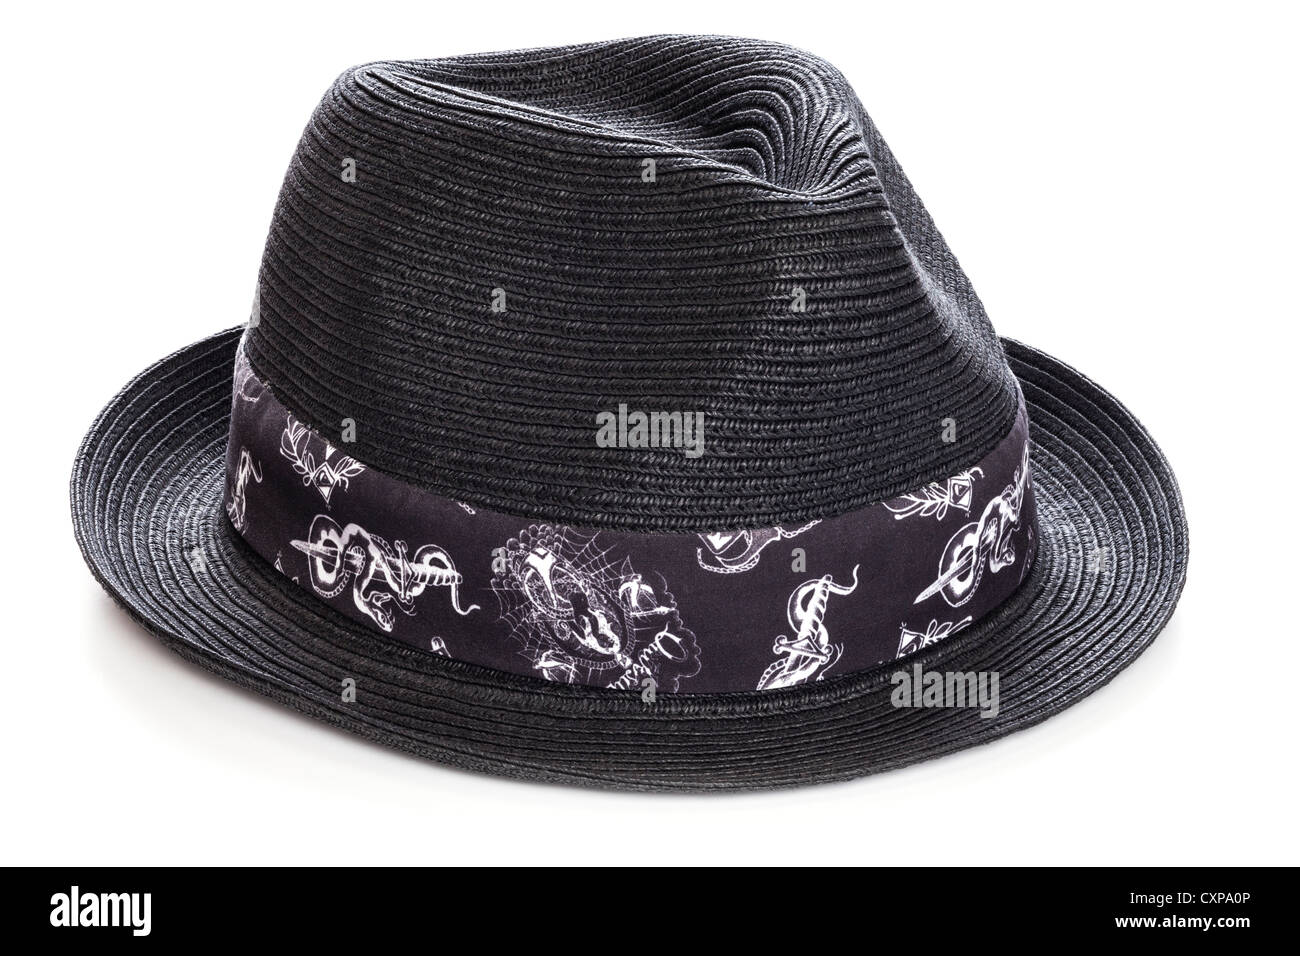 f28ecc269c53e Black straw trilby hat with fancy band, on white background with soft  shadow. Focus